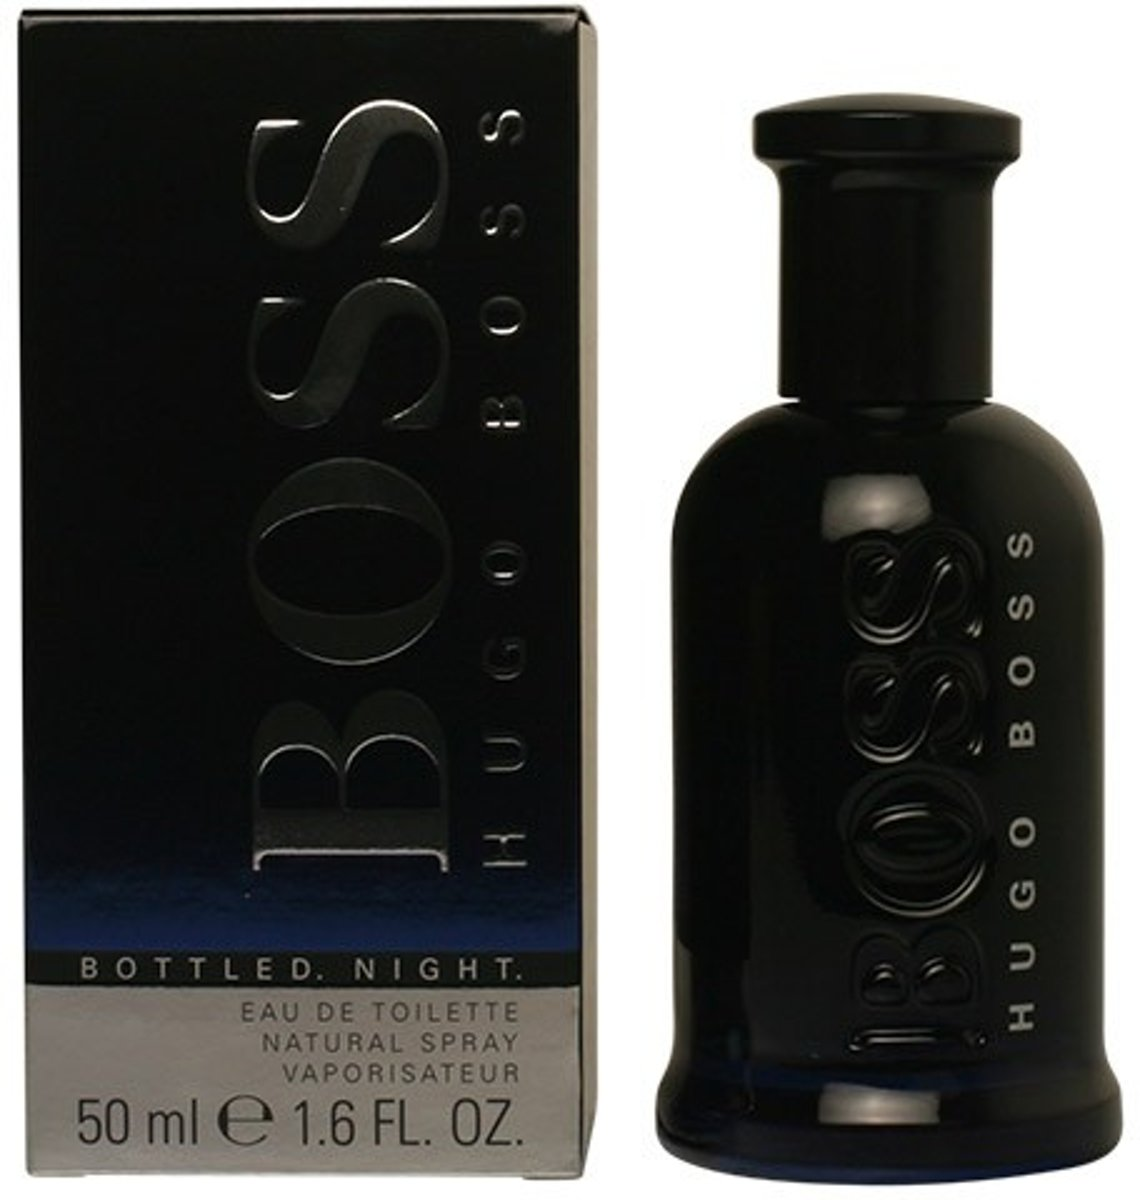 MULTI BUNDEL 2 stuks BOSS BOTTLED NIGHT Eau de Toilette Spray 50 ml